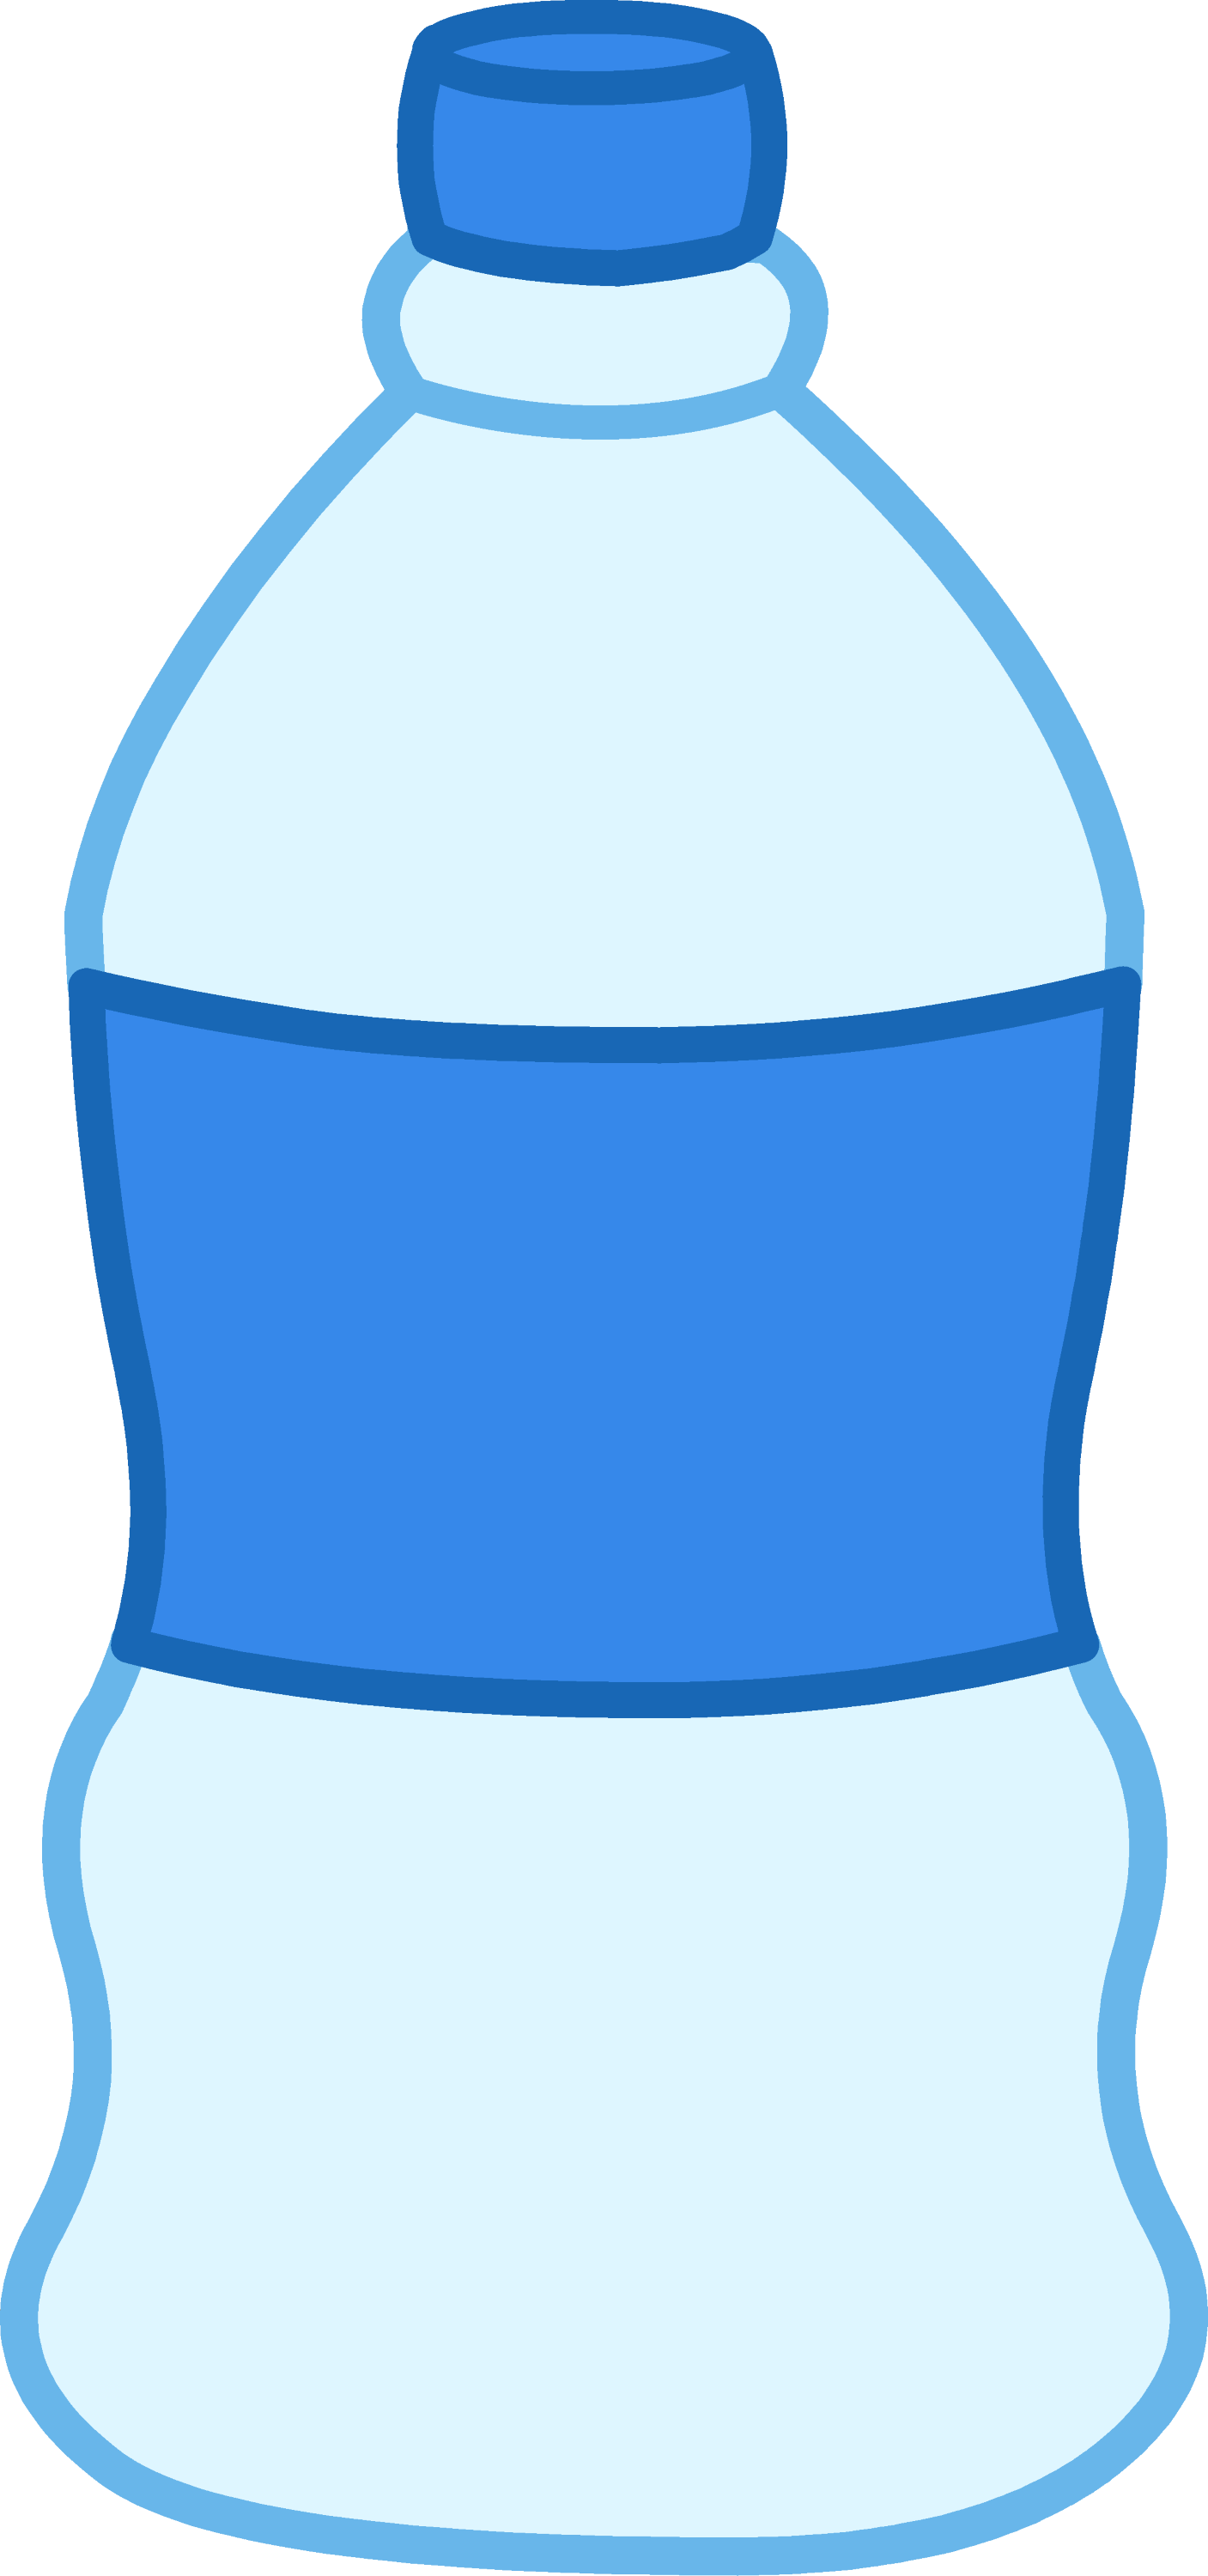 bottled water clipart design free clip art rh sweetclipart com bottled water png clipart Bottled Water Pouring Out Clip Art